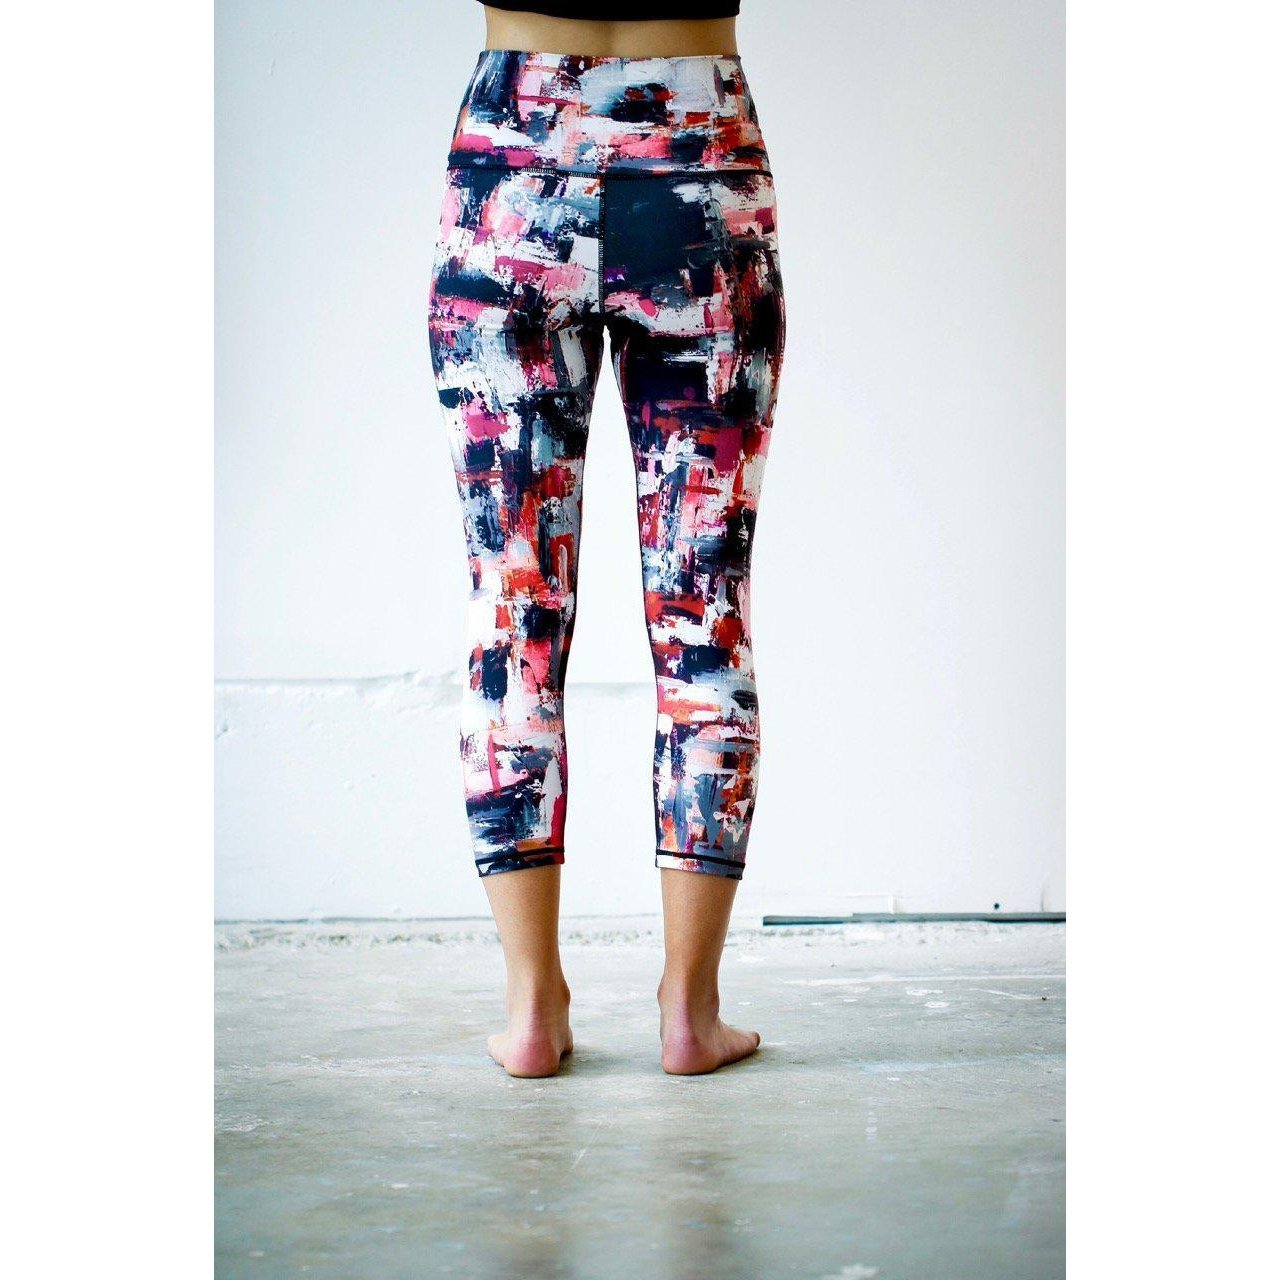 Black Gray Pink Solid Yoga Capris